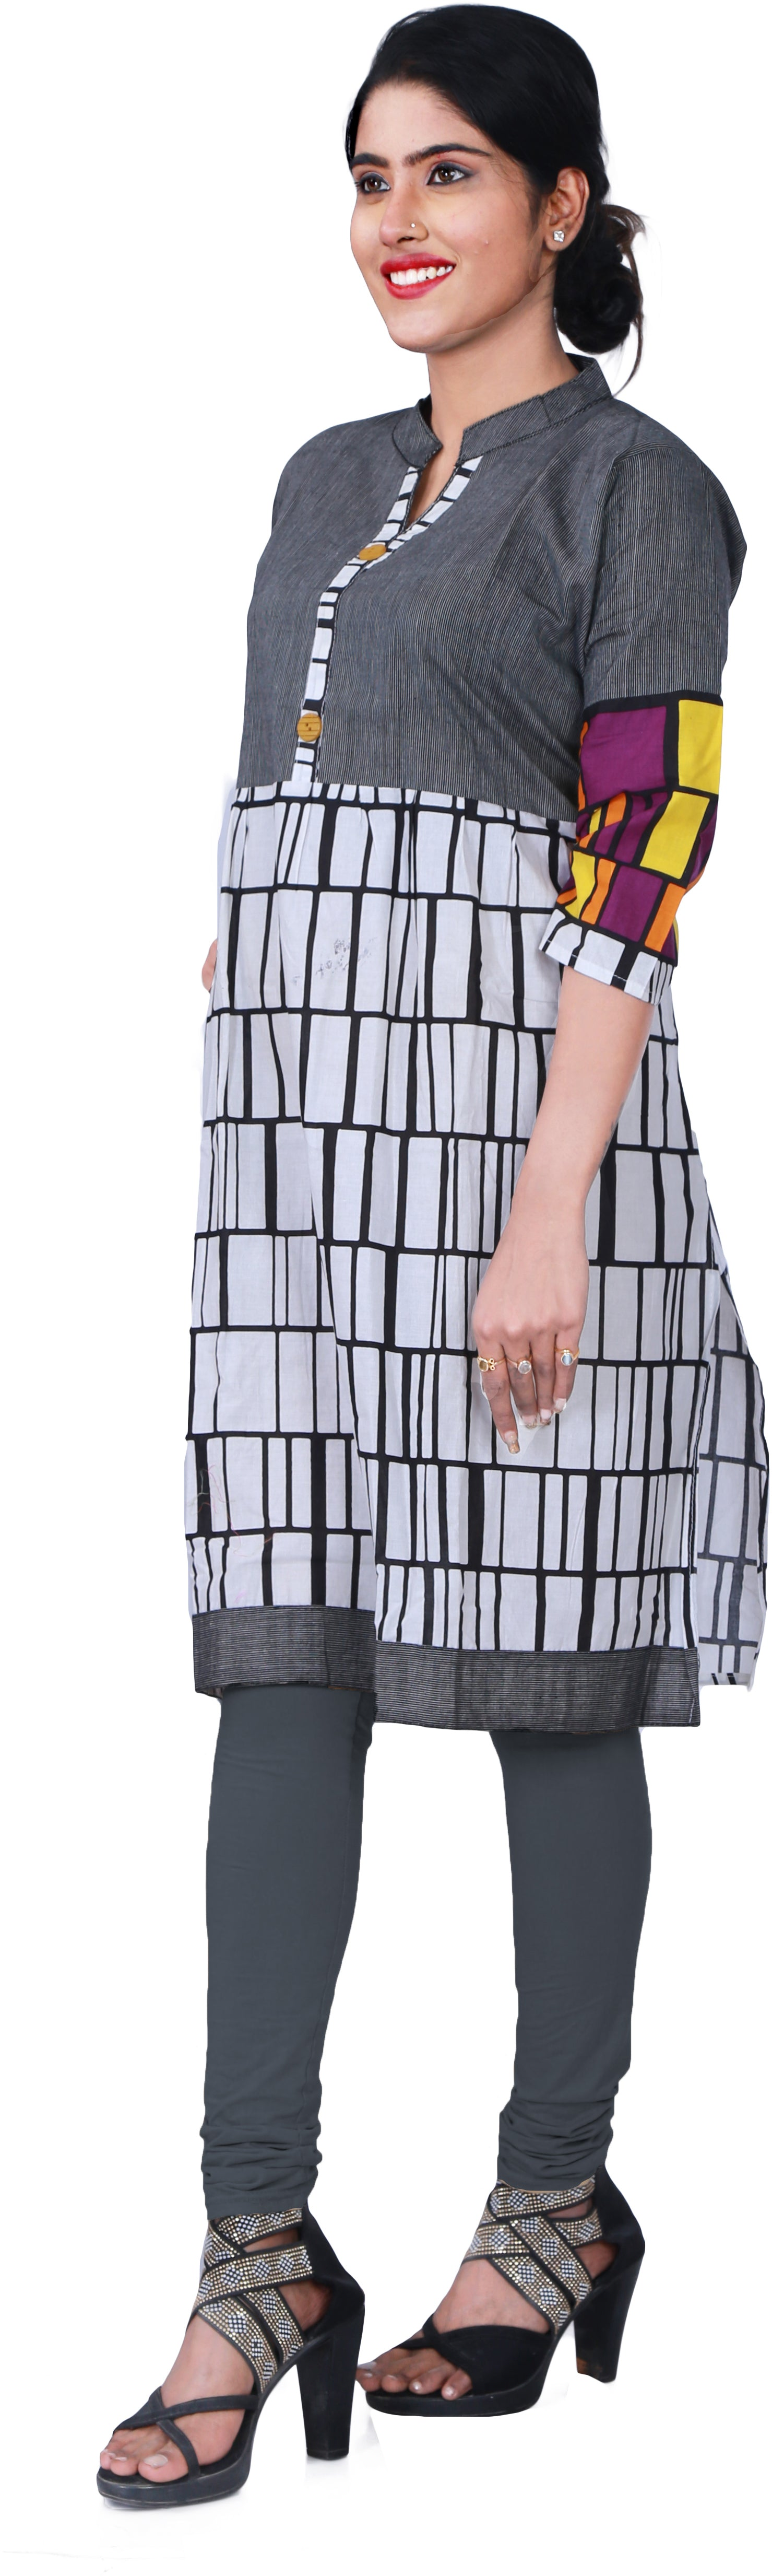 SMSAREE Grey & White Designer Casual Partywear Pure Cotton Printed Hand Embroidery Work Stylish Women Kurti Kurta With Free Matching Leggings KC039